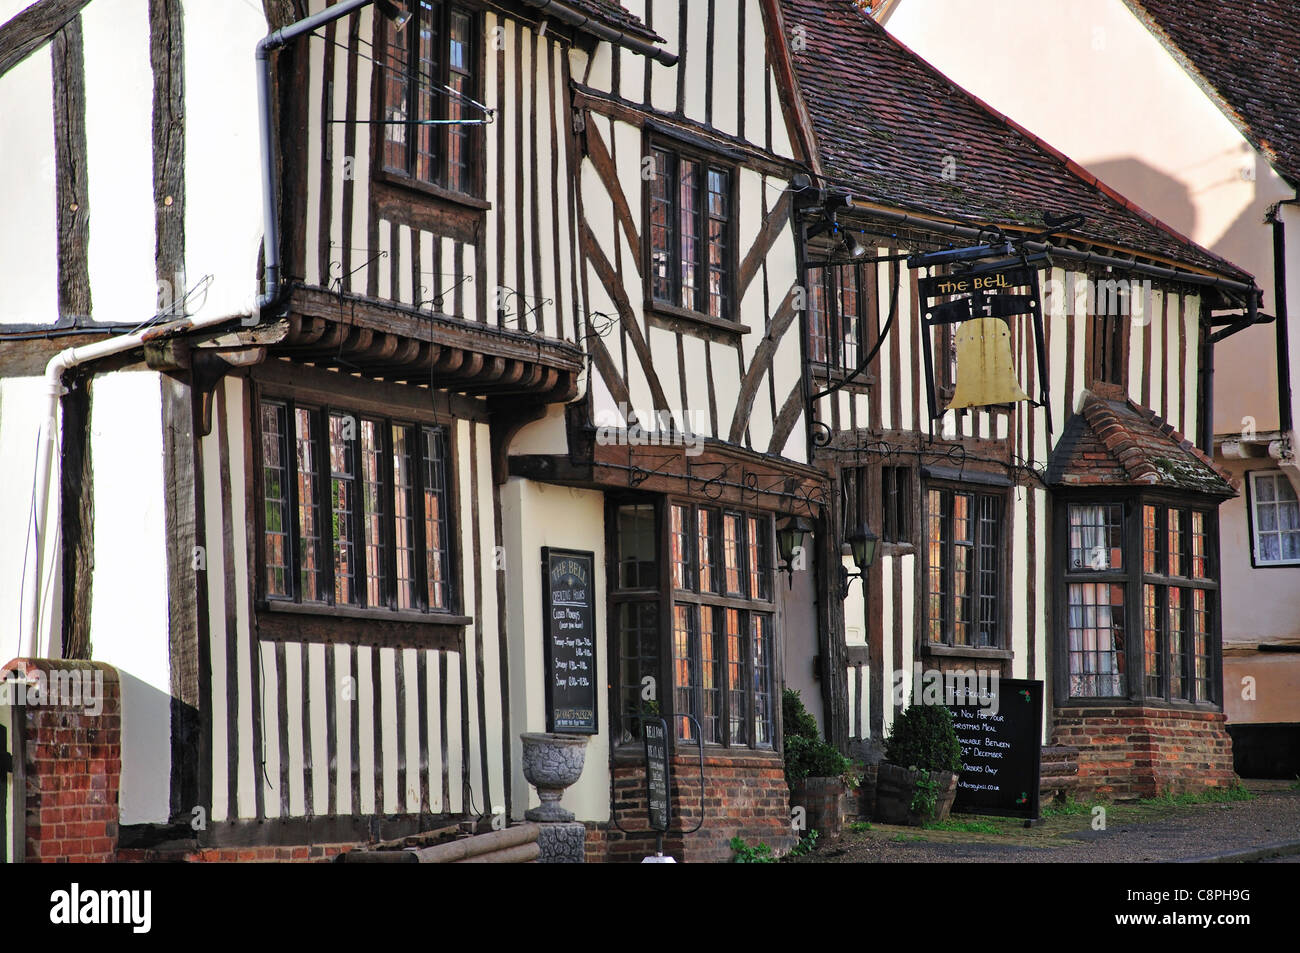 14th century, The Bell Inn, The Street, Kersey, Suffolk, England, United Kingdom - Stock Image